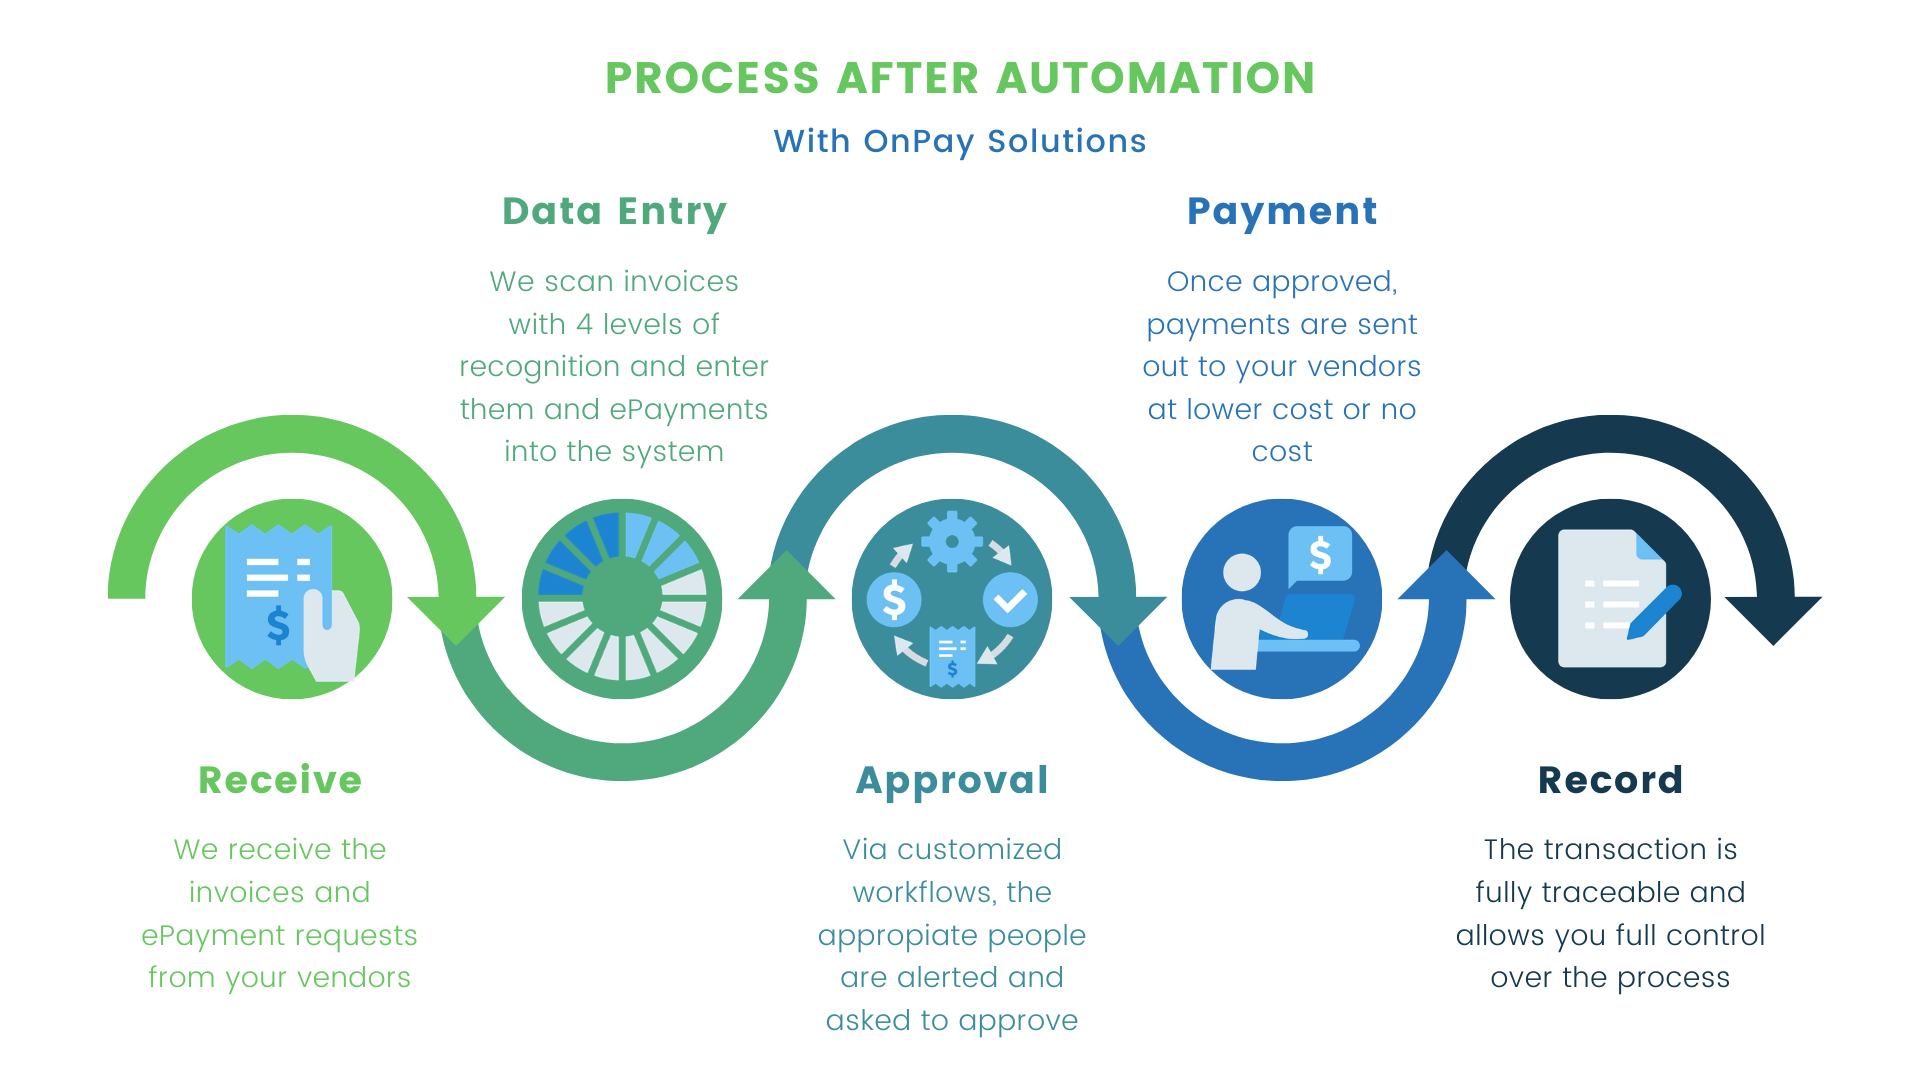 ap-process-after-automation-chart-image